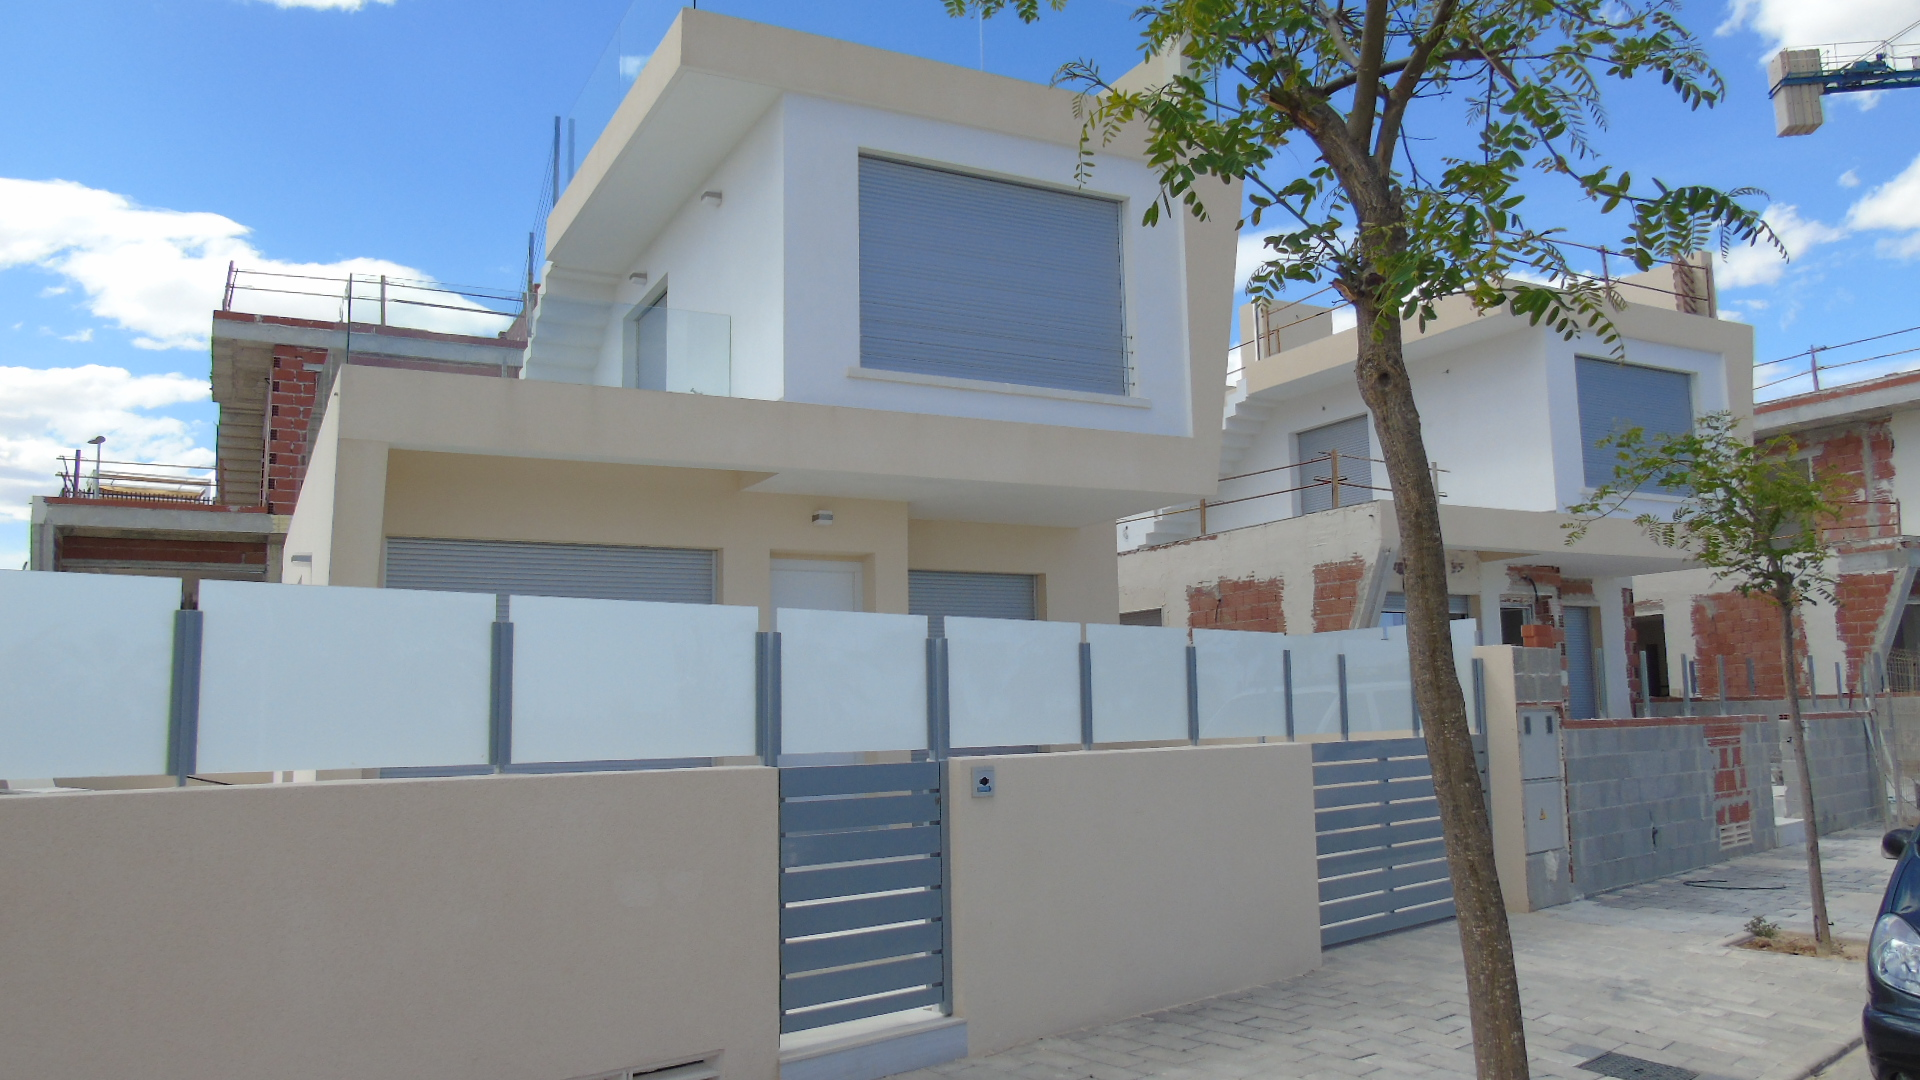 3 bedroom Villa for sale in Mil Palmeras